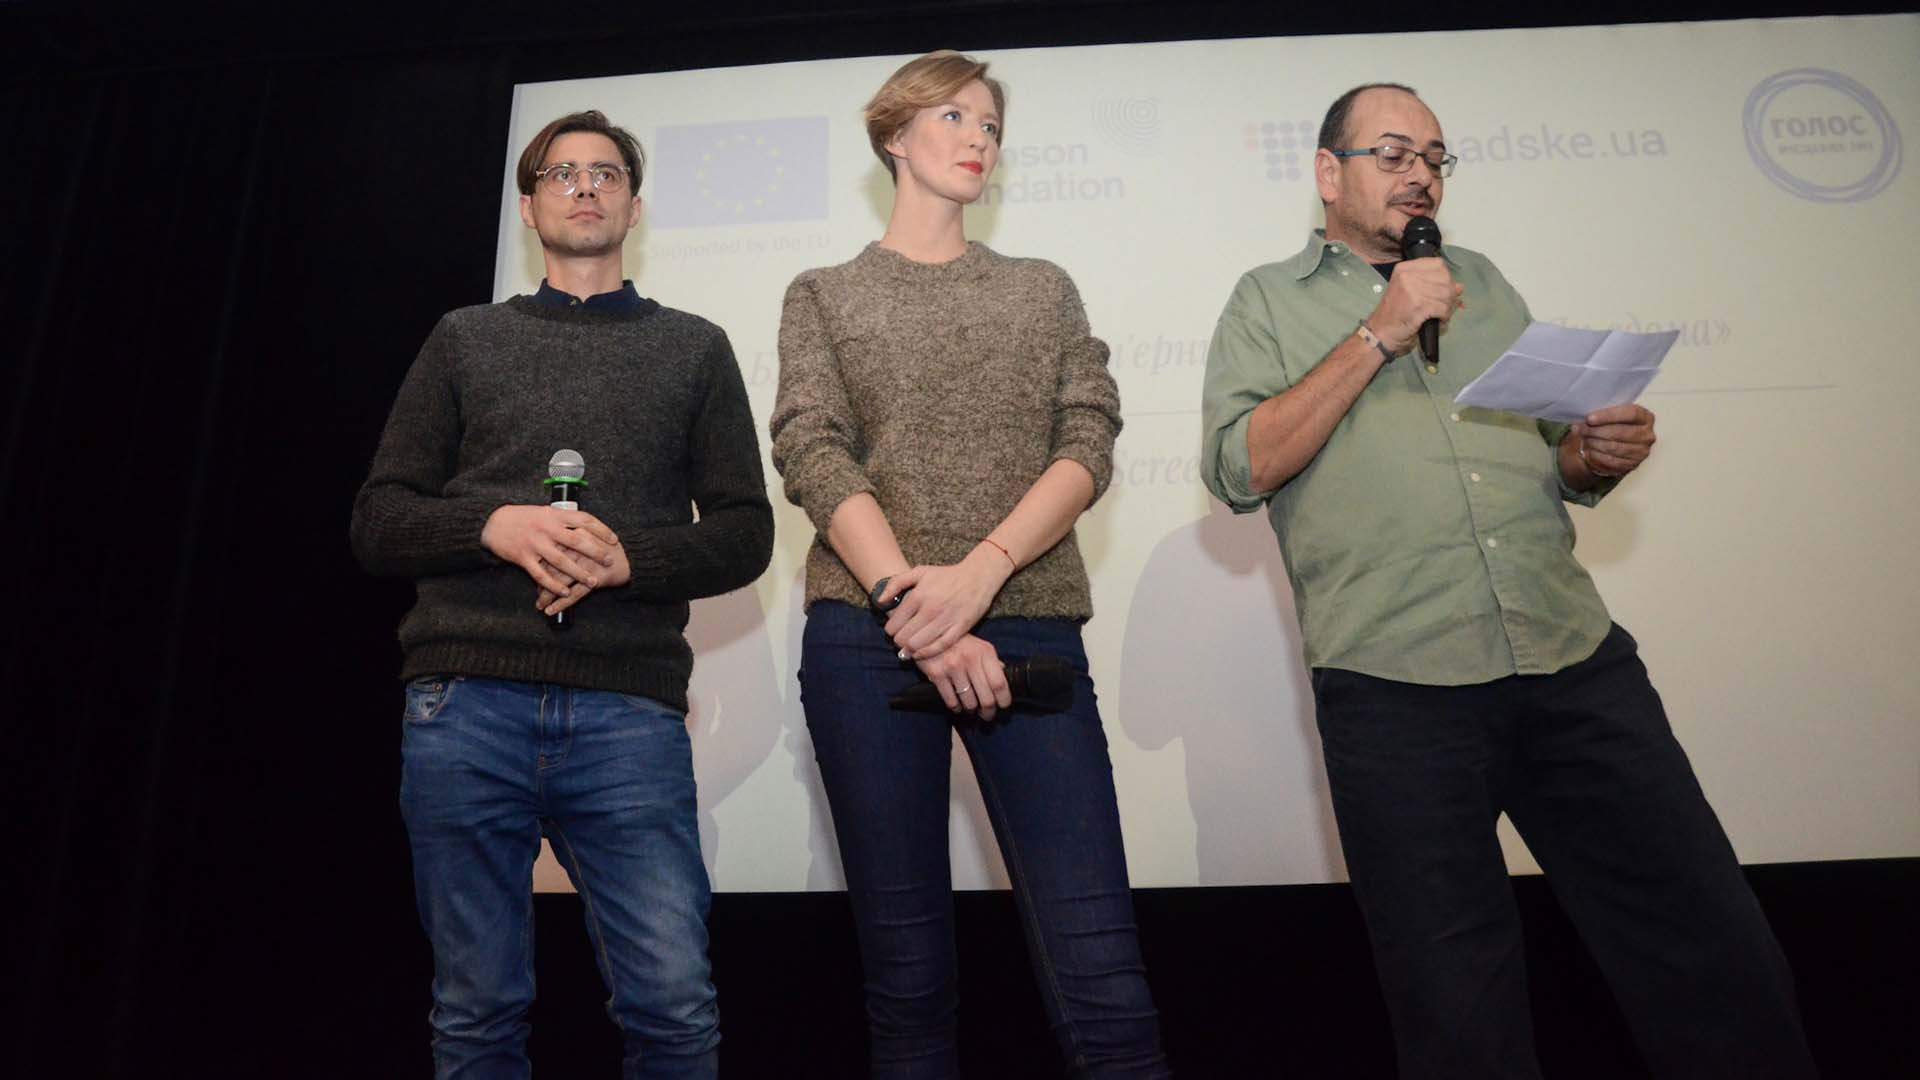 Producers of the the film (left to right), Oleksandr Nazarovof and Angelina Karyakina of Hromadske, and David Hands of Thomson Foundation